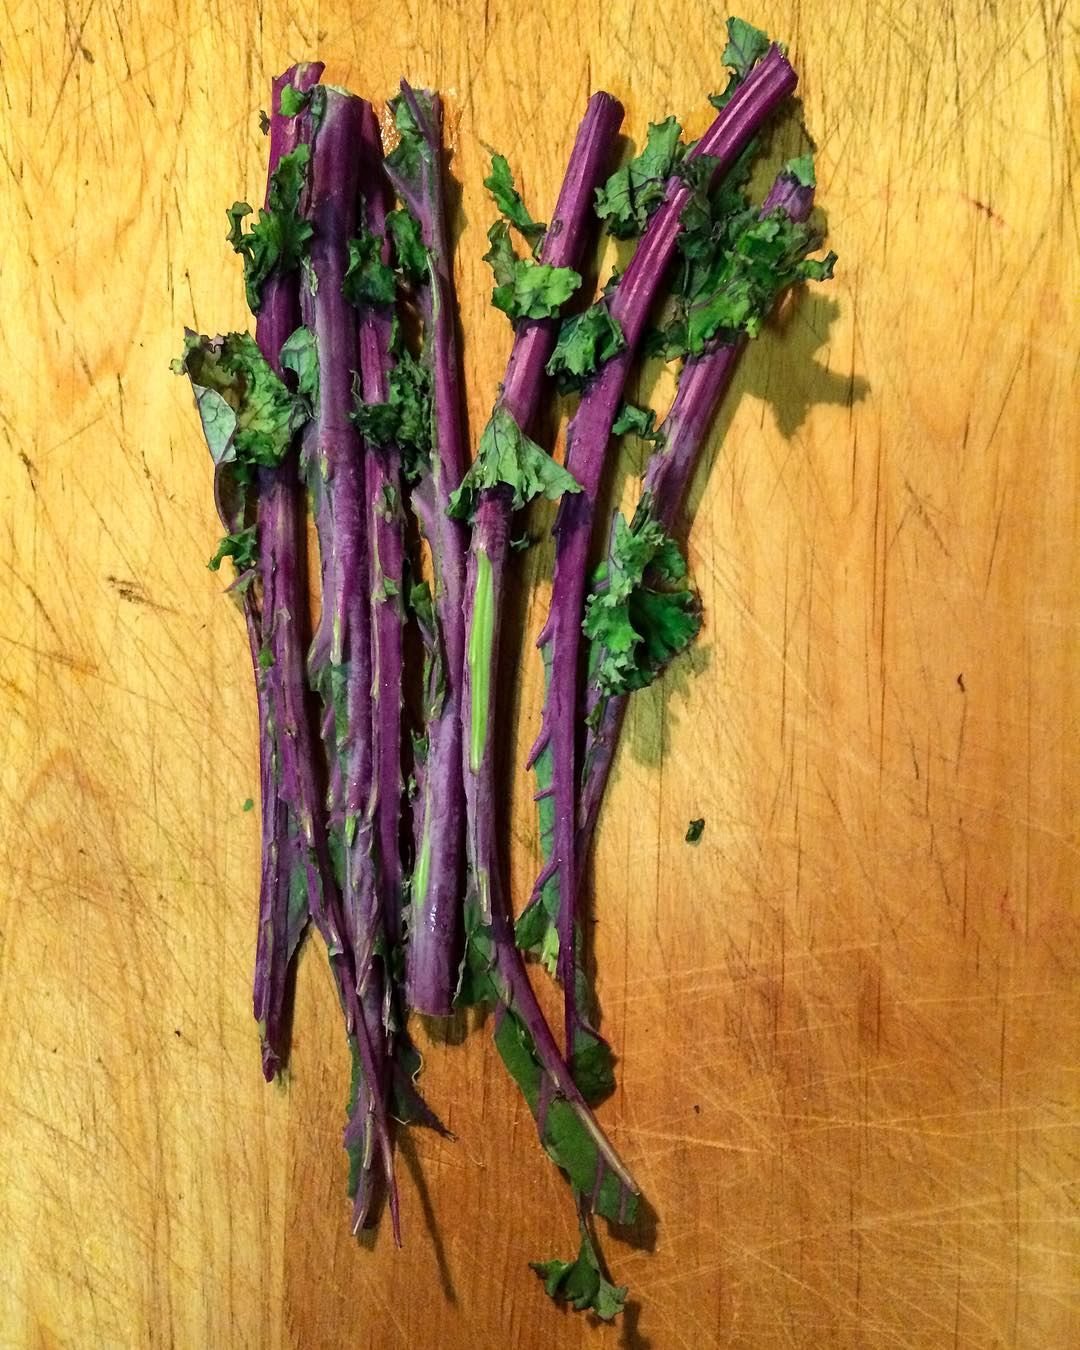 Todays inspiration aubergine stems of curlie kale vestiges of greensohellip